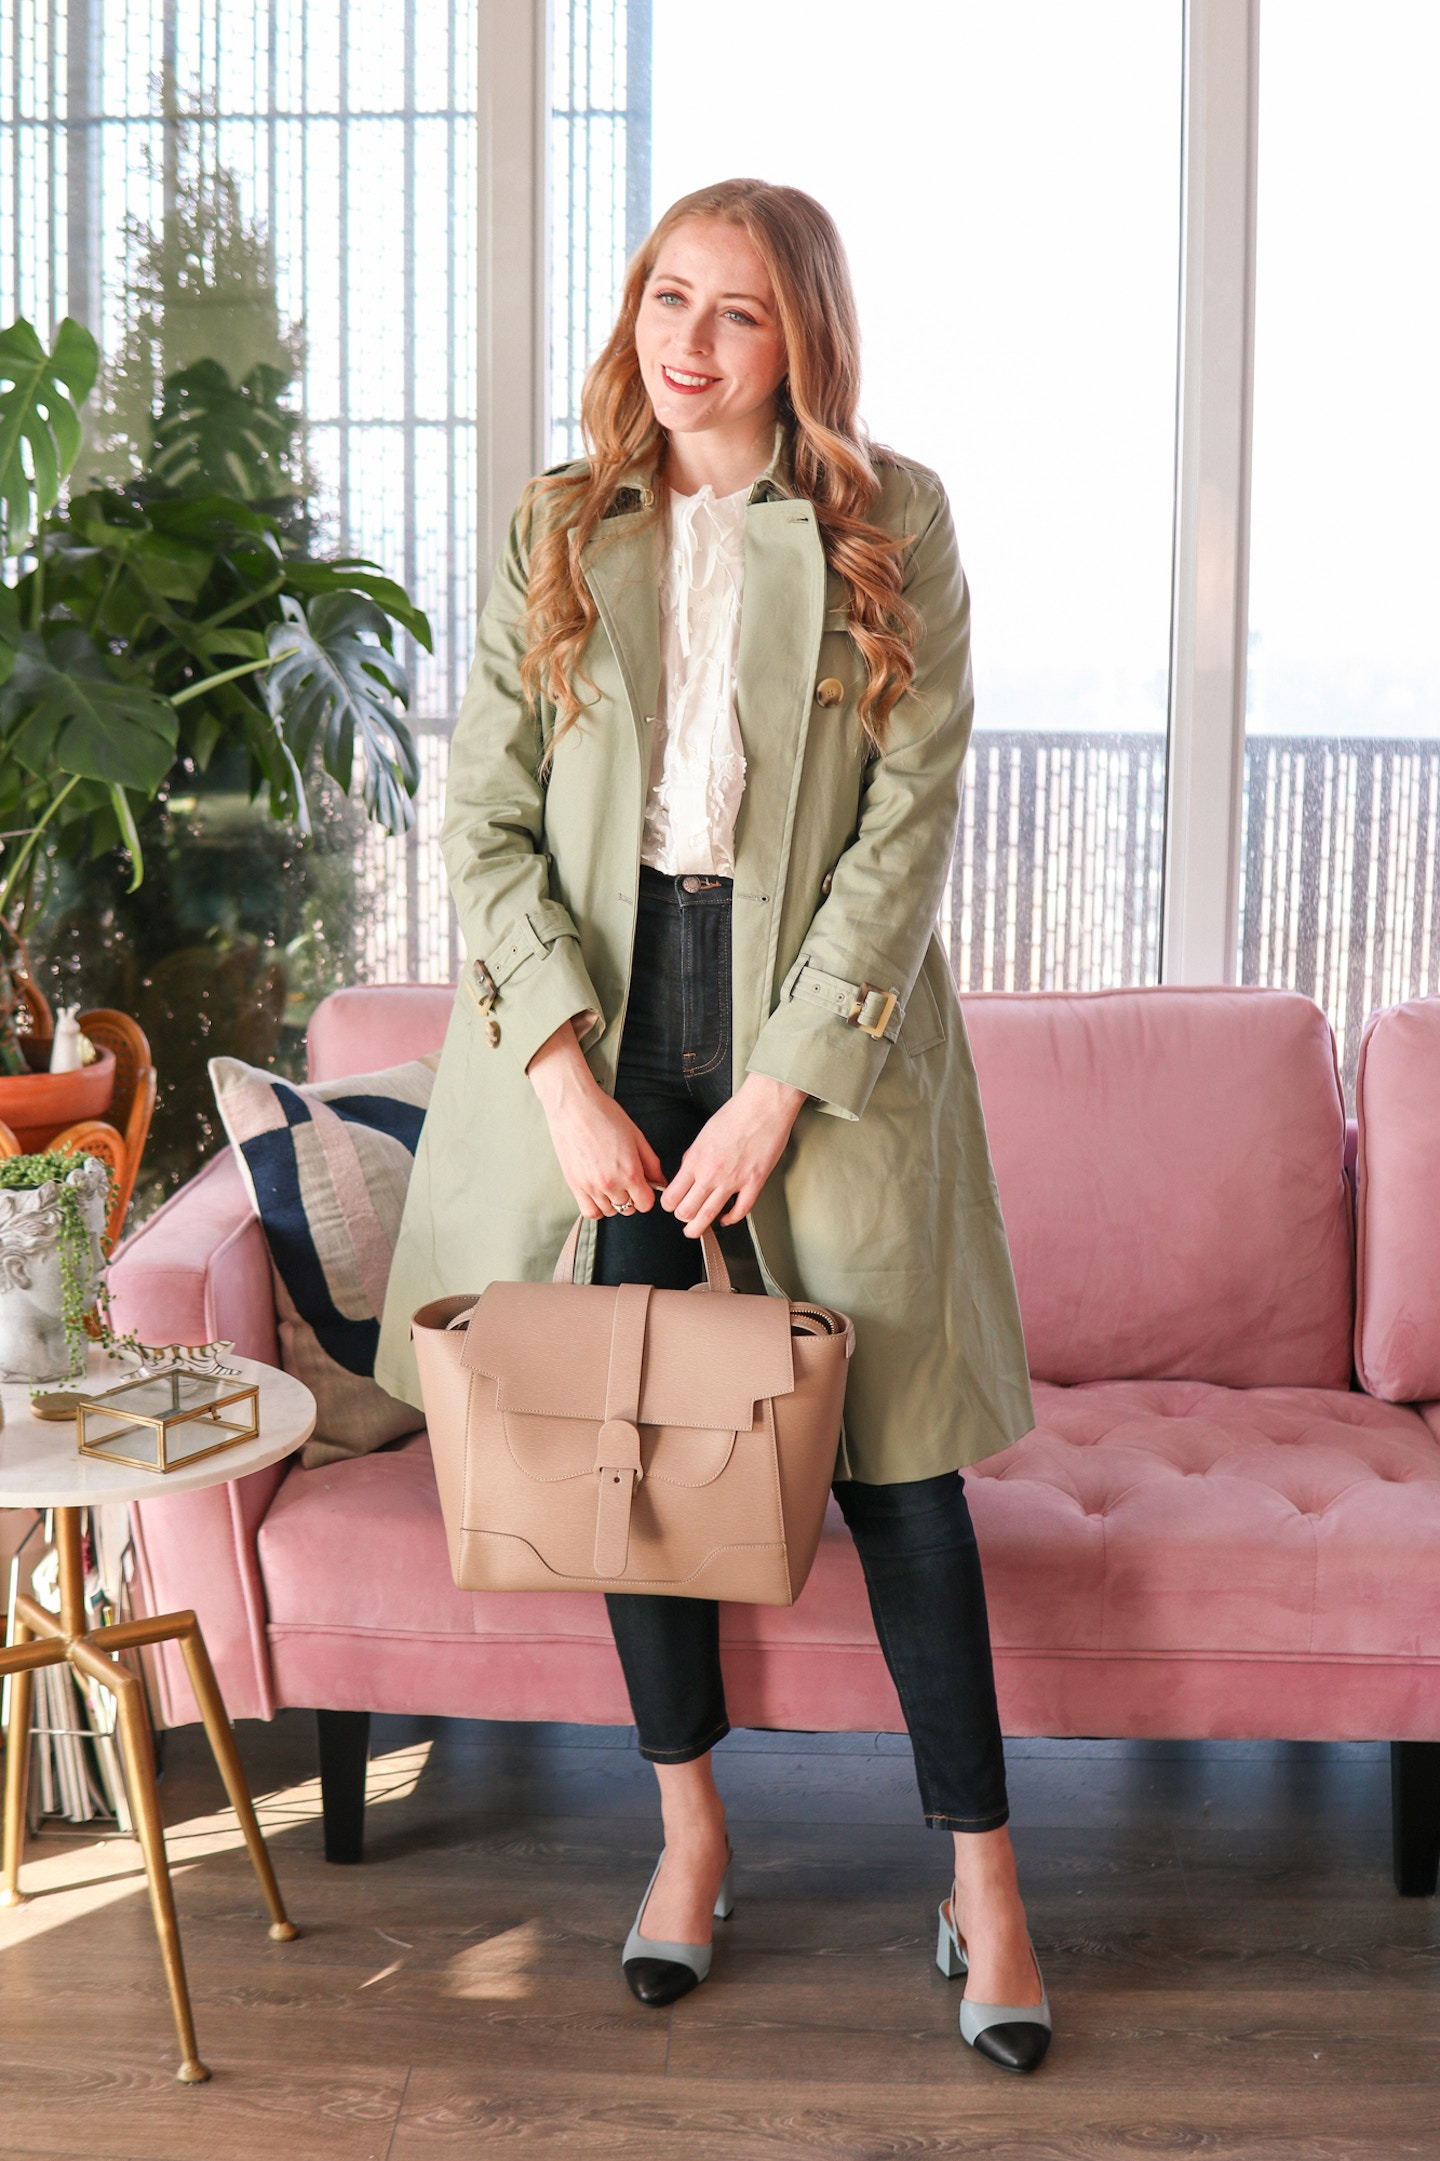 This green trench coat is SO chic. I love how it pairs effortlessly with a white cotton blouse and jeans, or layered over a dress for a feminine dressy look. This trenchcoat for under $150 was such a steal, and also has weatherproof fabric! I paired it with the white cotton baby-collar blouse, my Senreve Maestra bag (get $50 off with code NATALIEAST) and a pair of cap-toe mules from L'Intervalle.